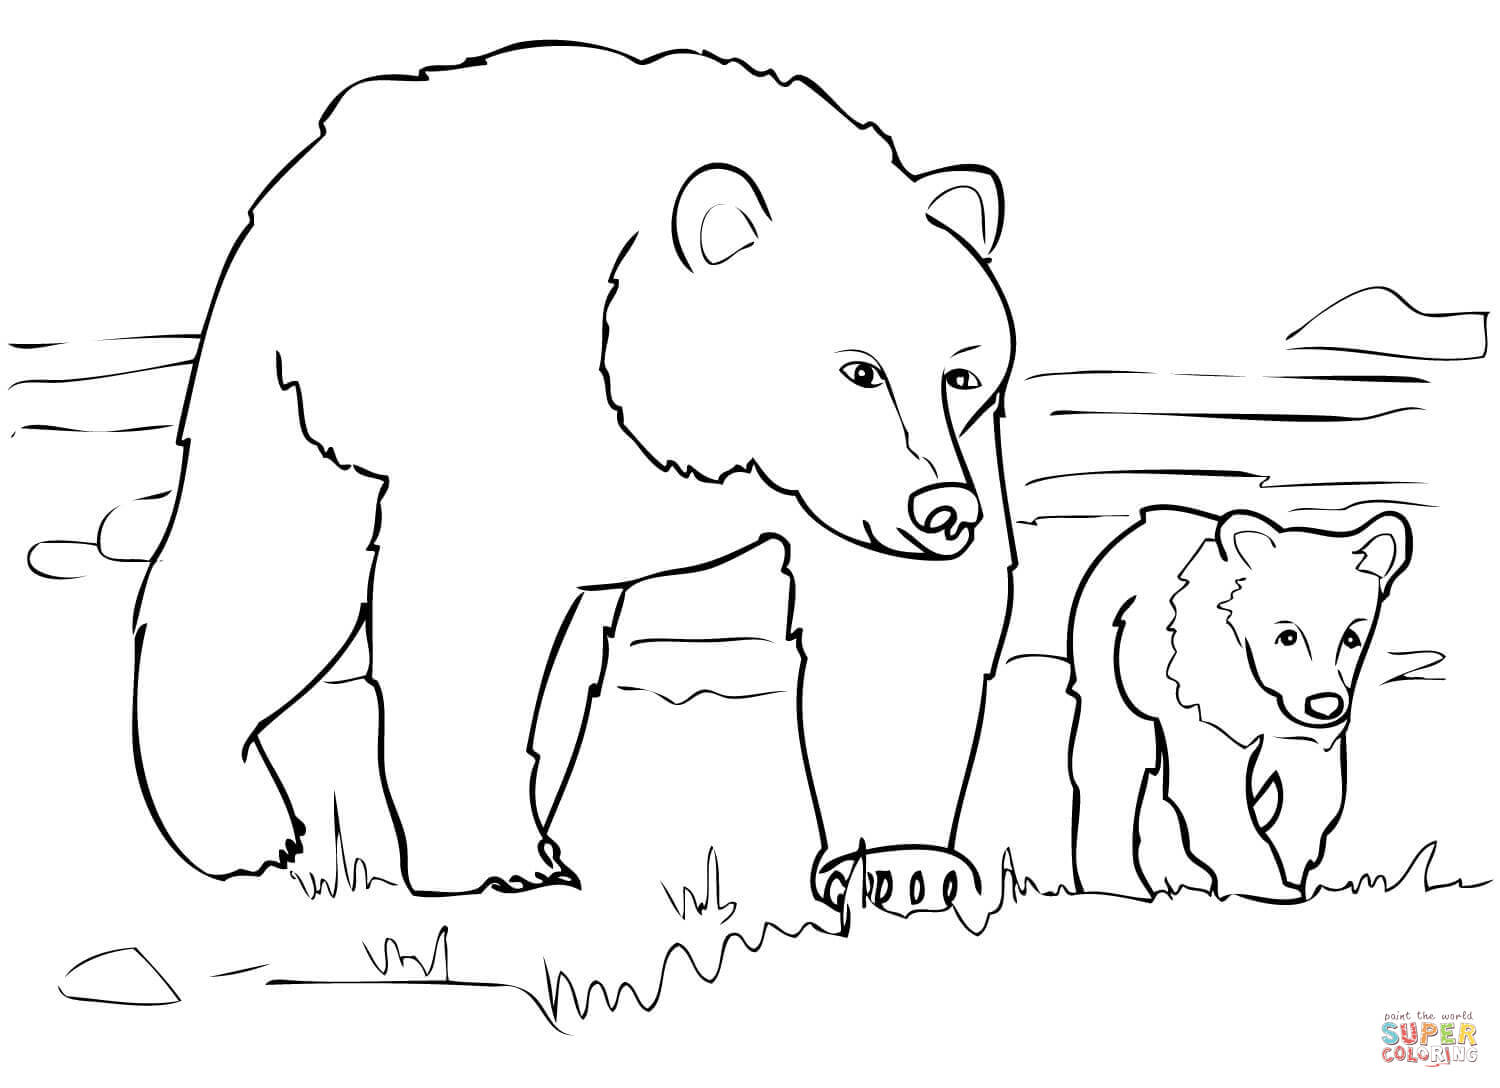 21+ Wonderful Image of Bear Coloring Pages